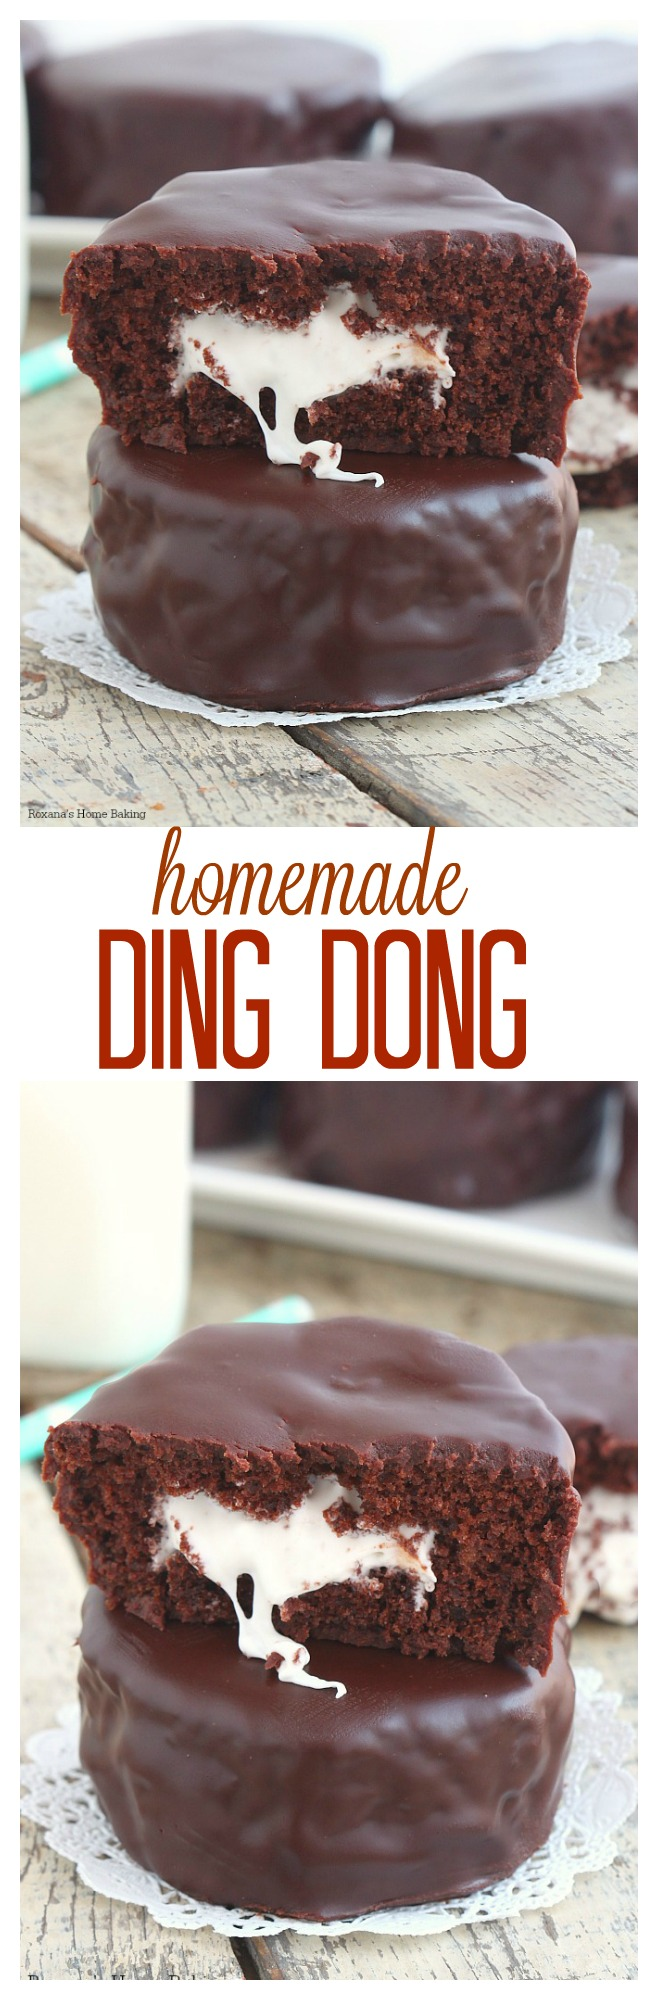 Homemade ding dong recipe